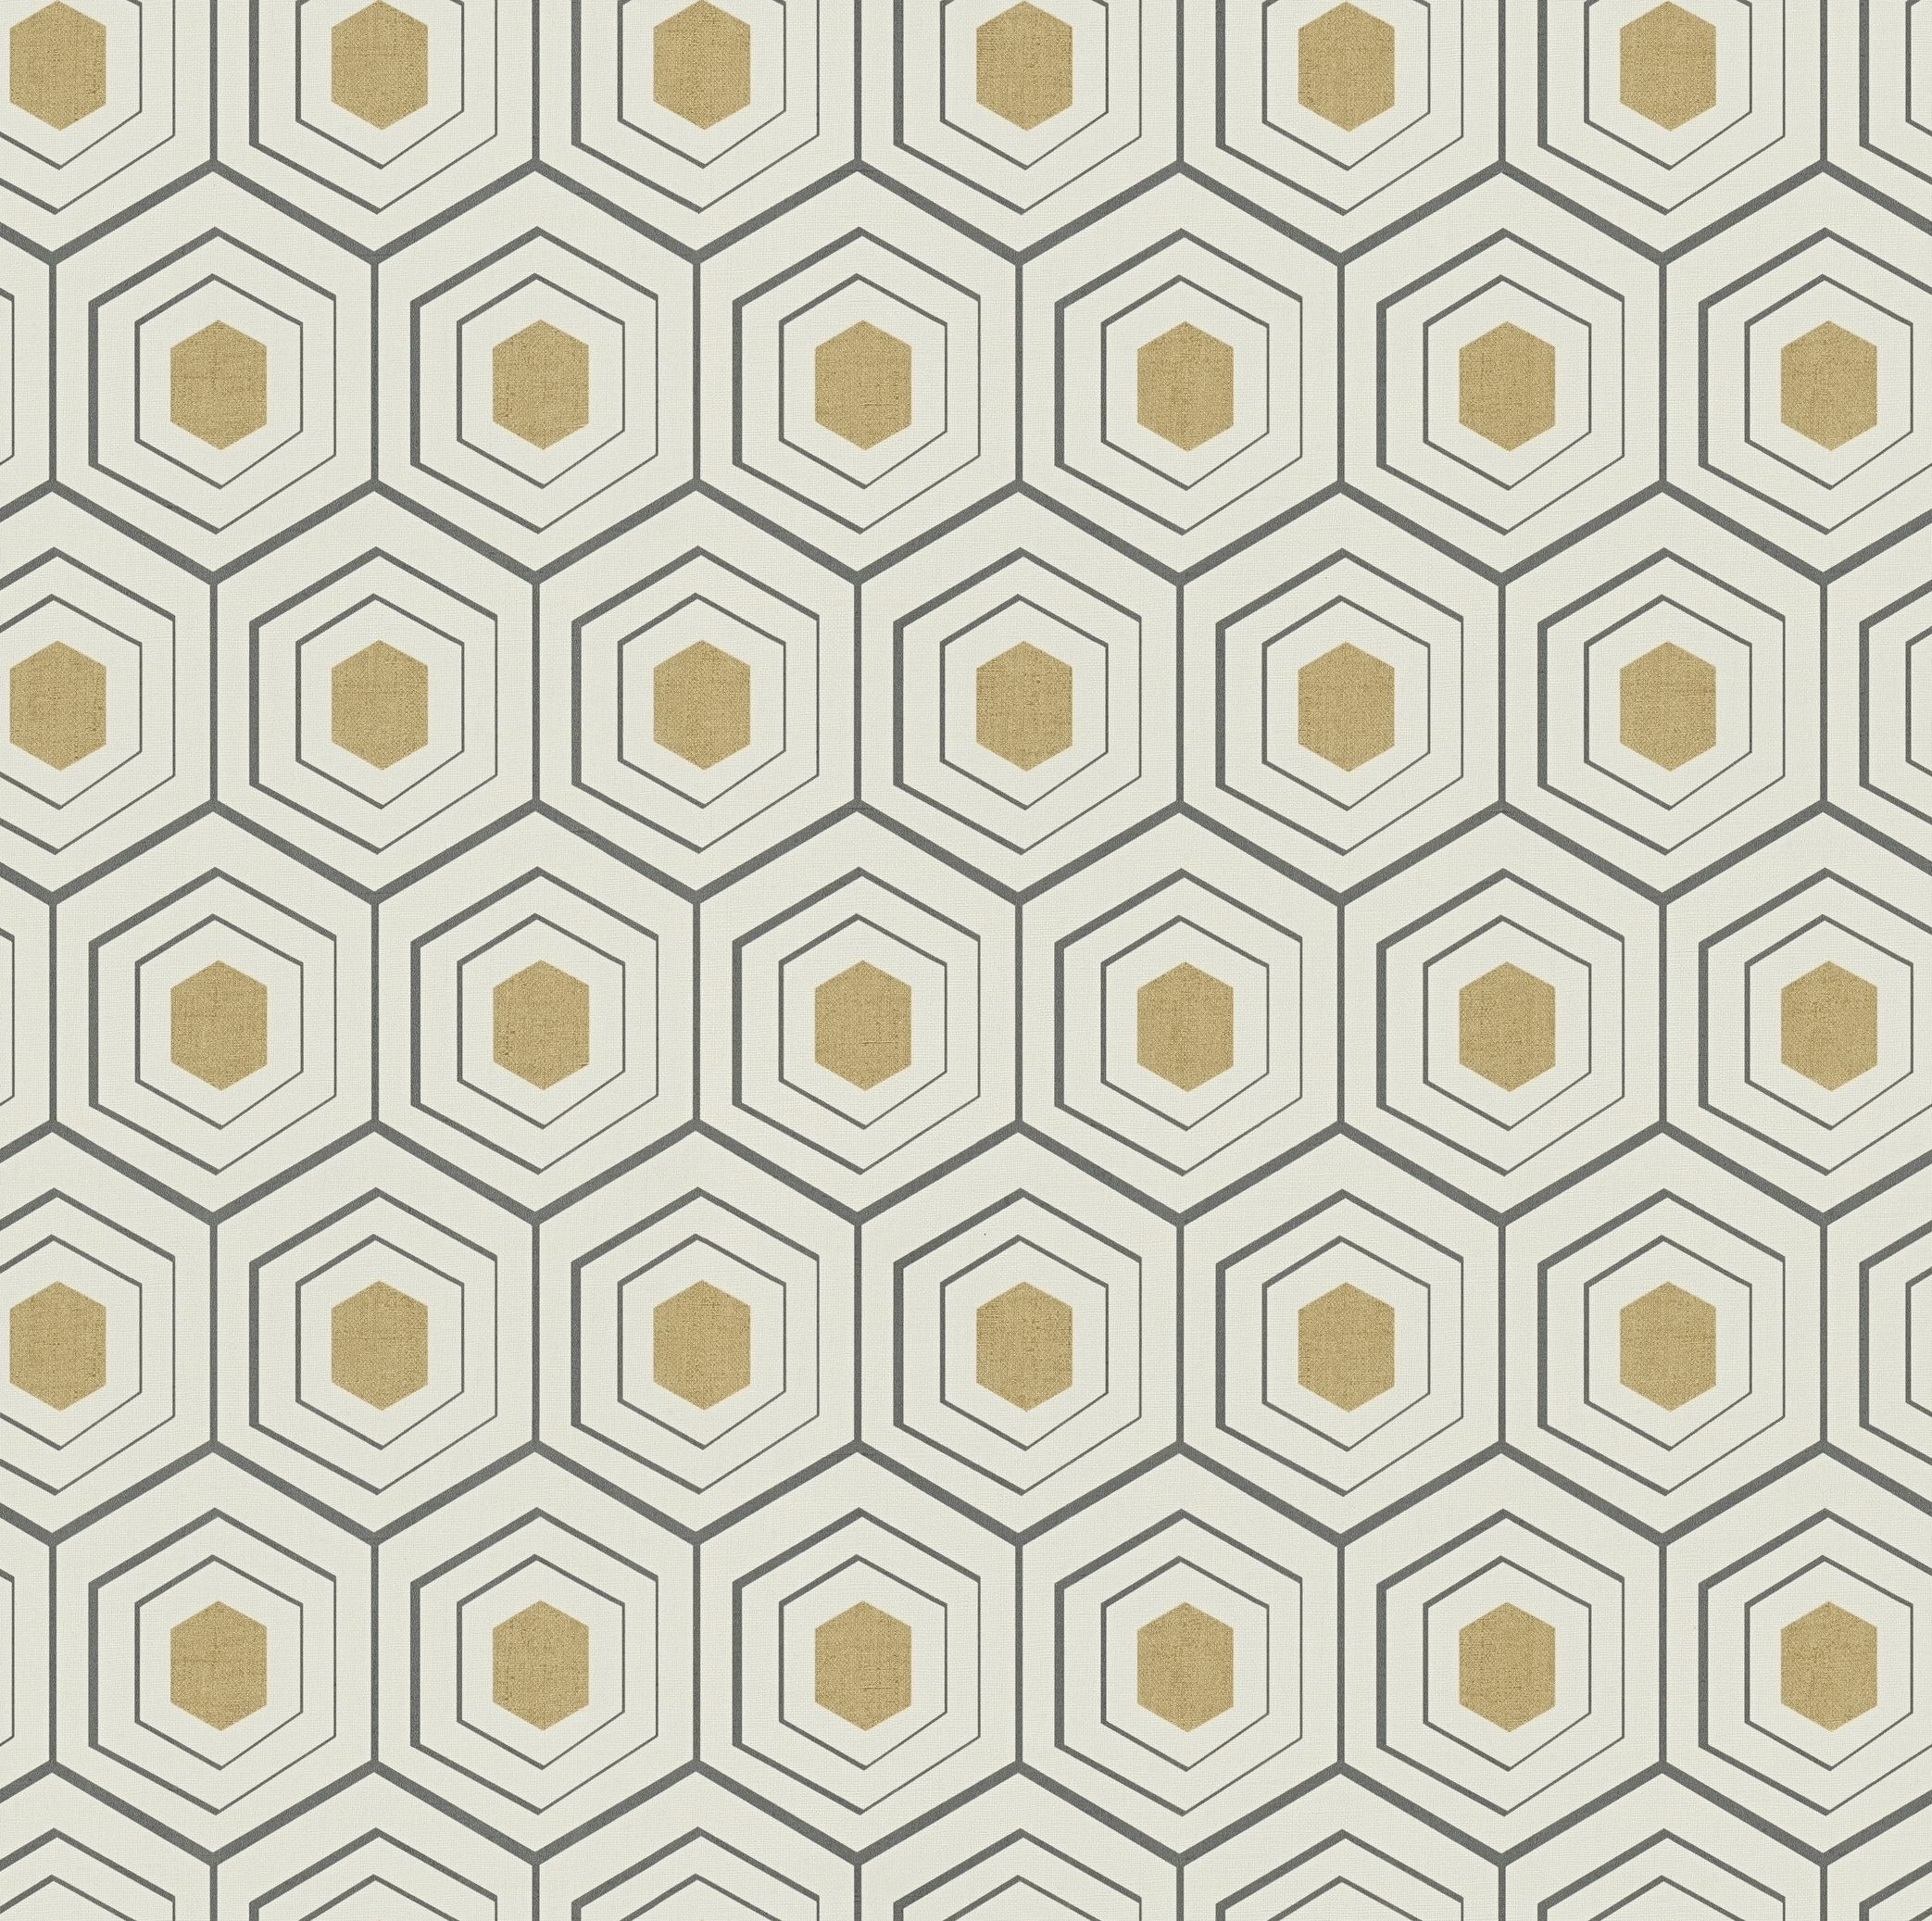 Albany Hexagon Black Gold Wallpaper Main Image